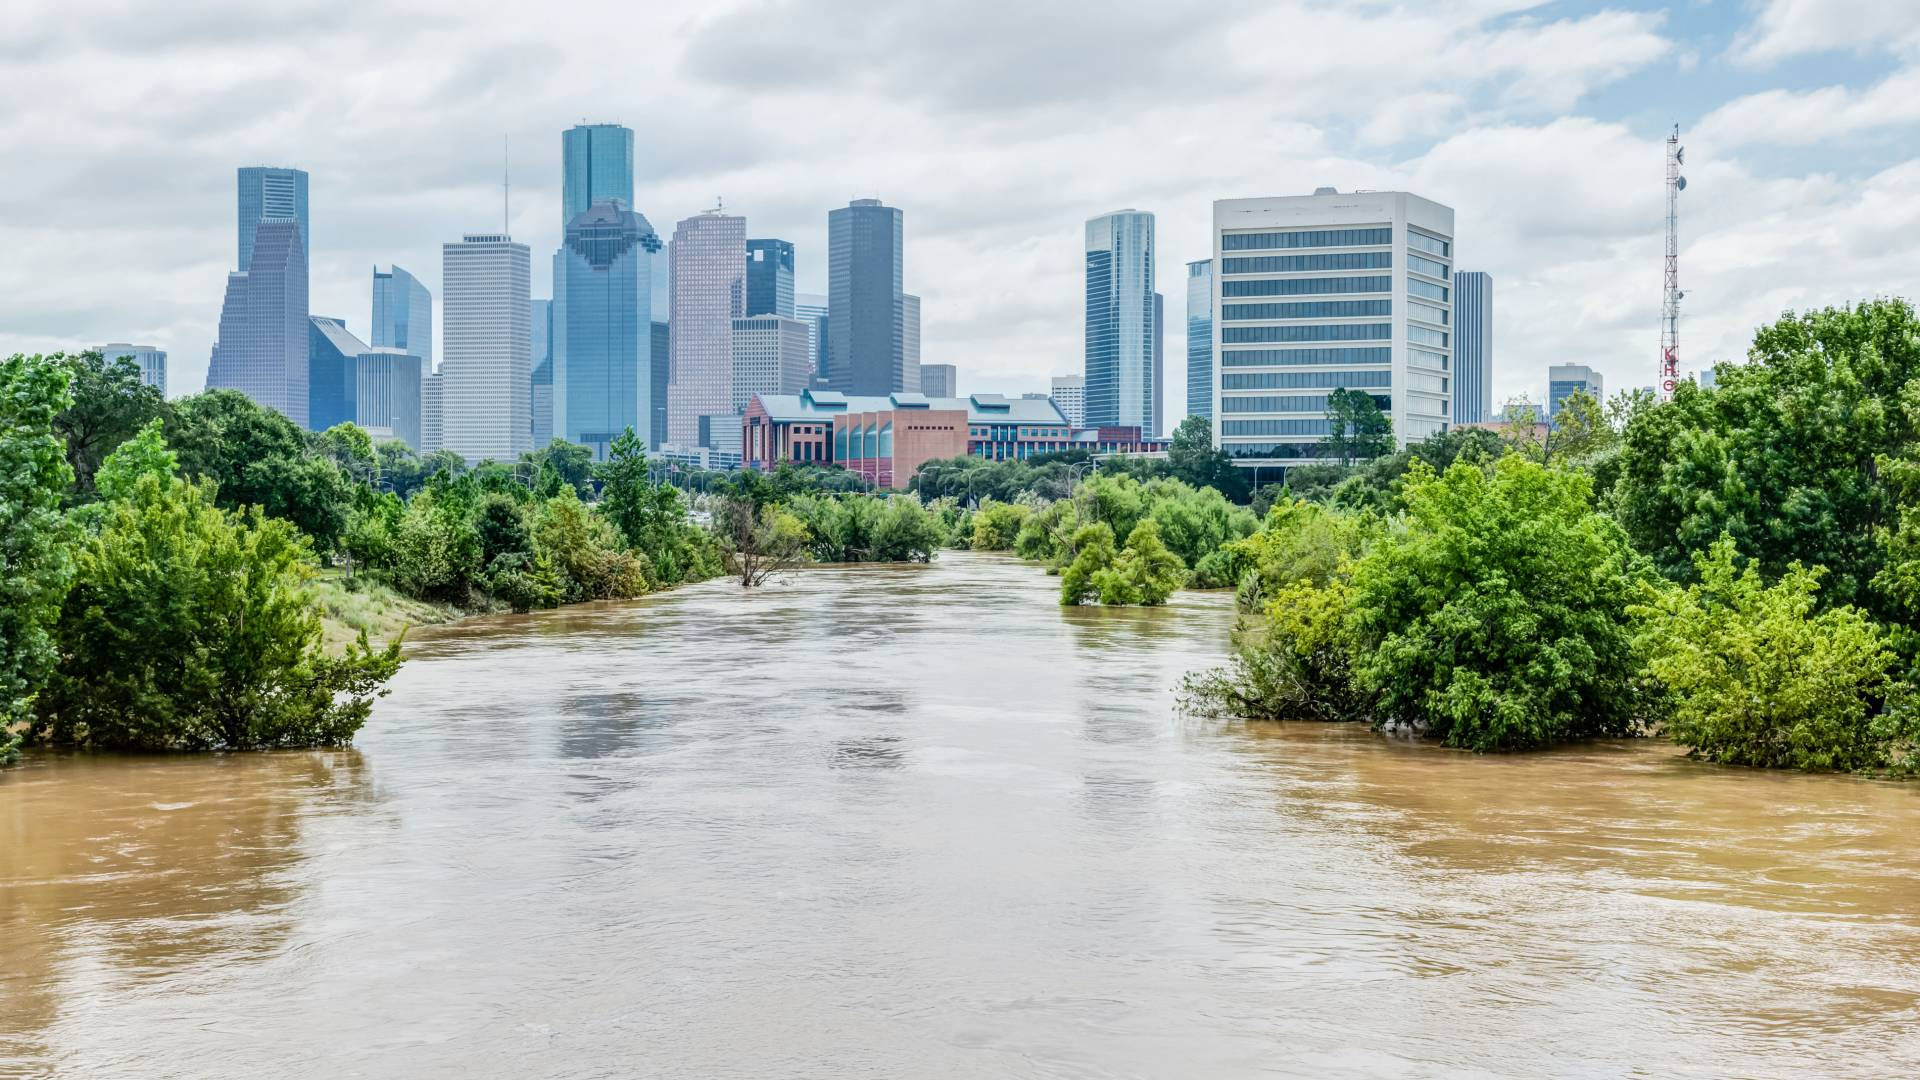 Flooding from Hurrican Harvey with buildings of Houston in the background